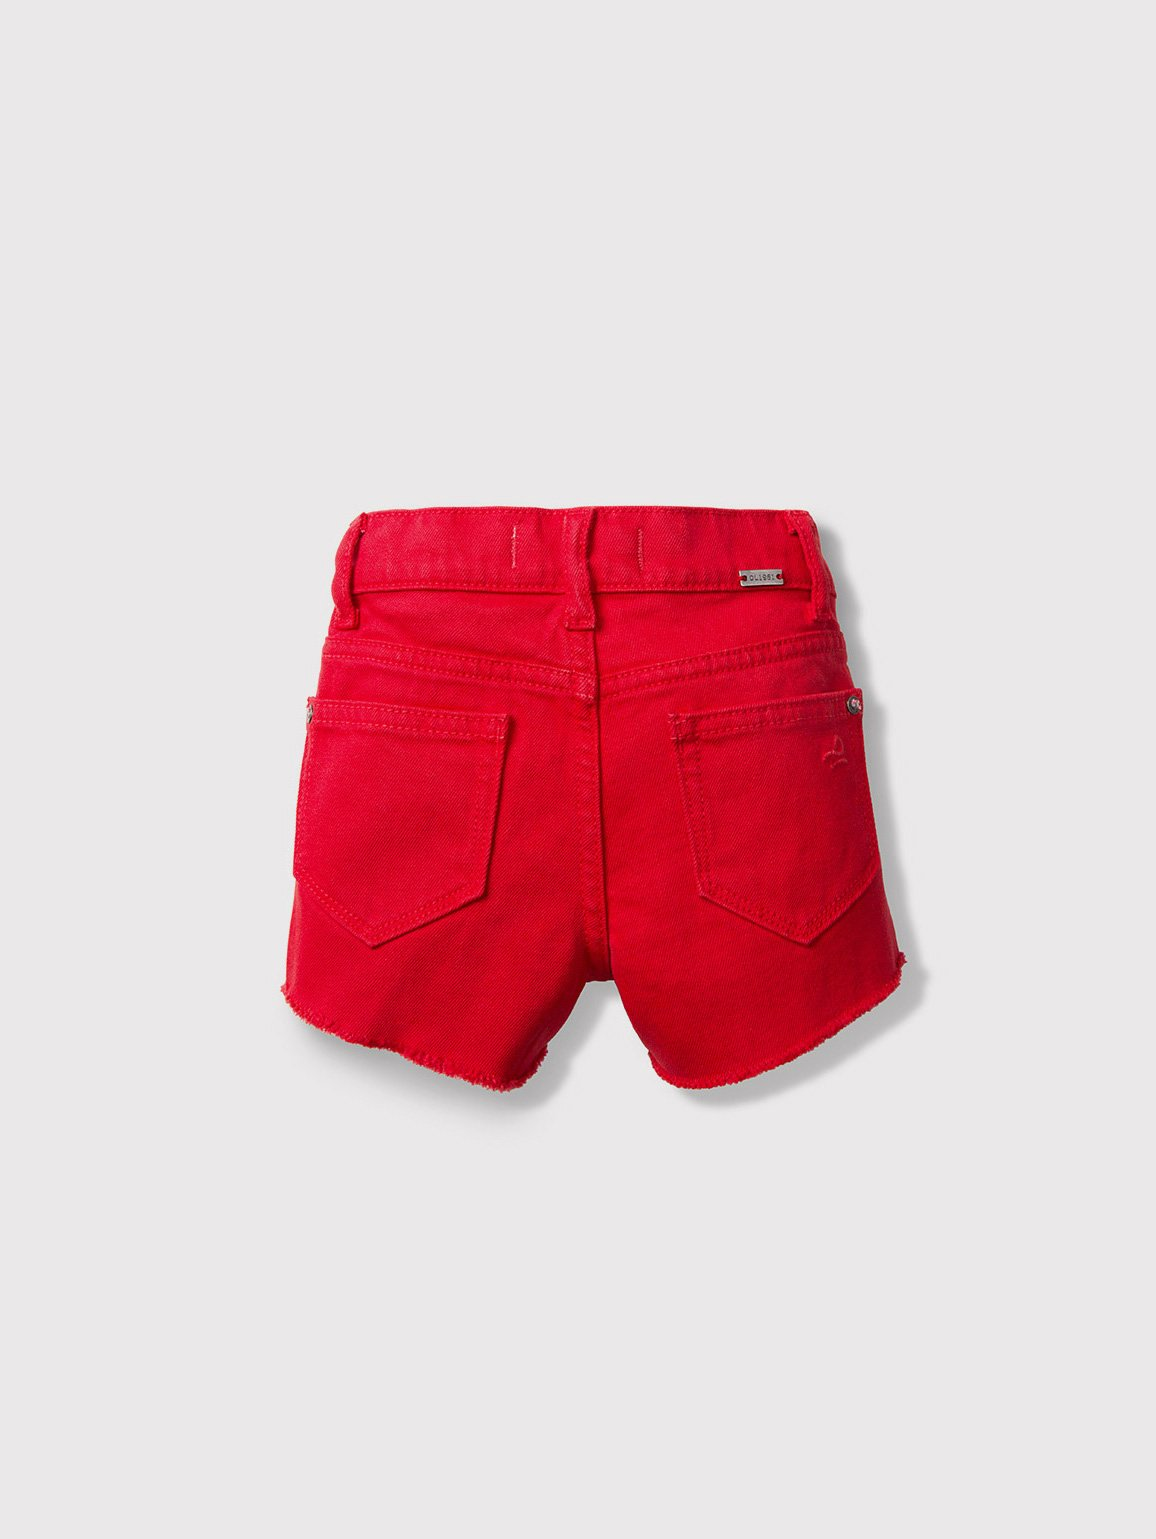 Toddler Girls - Lucy/Tg Short Berry - DL1961